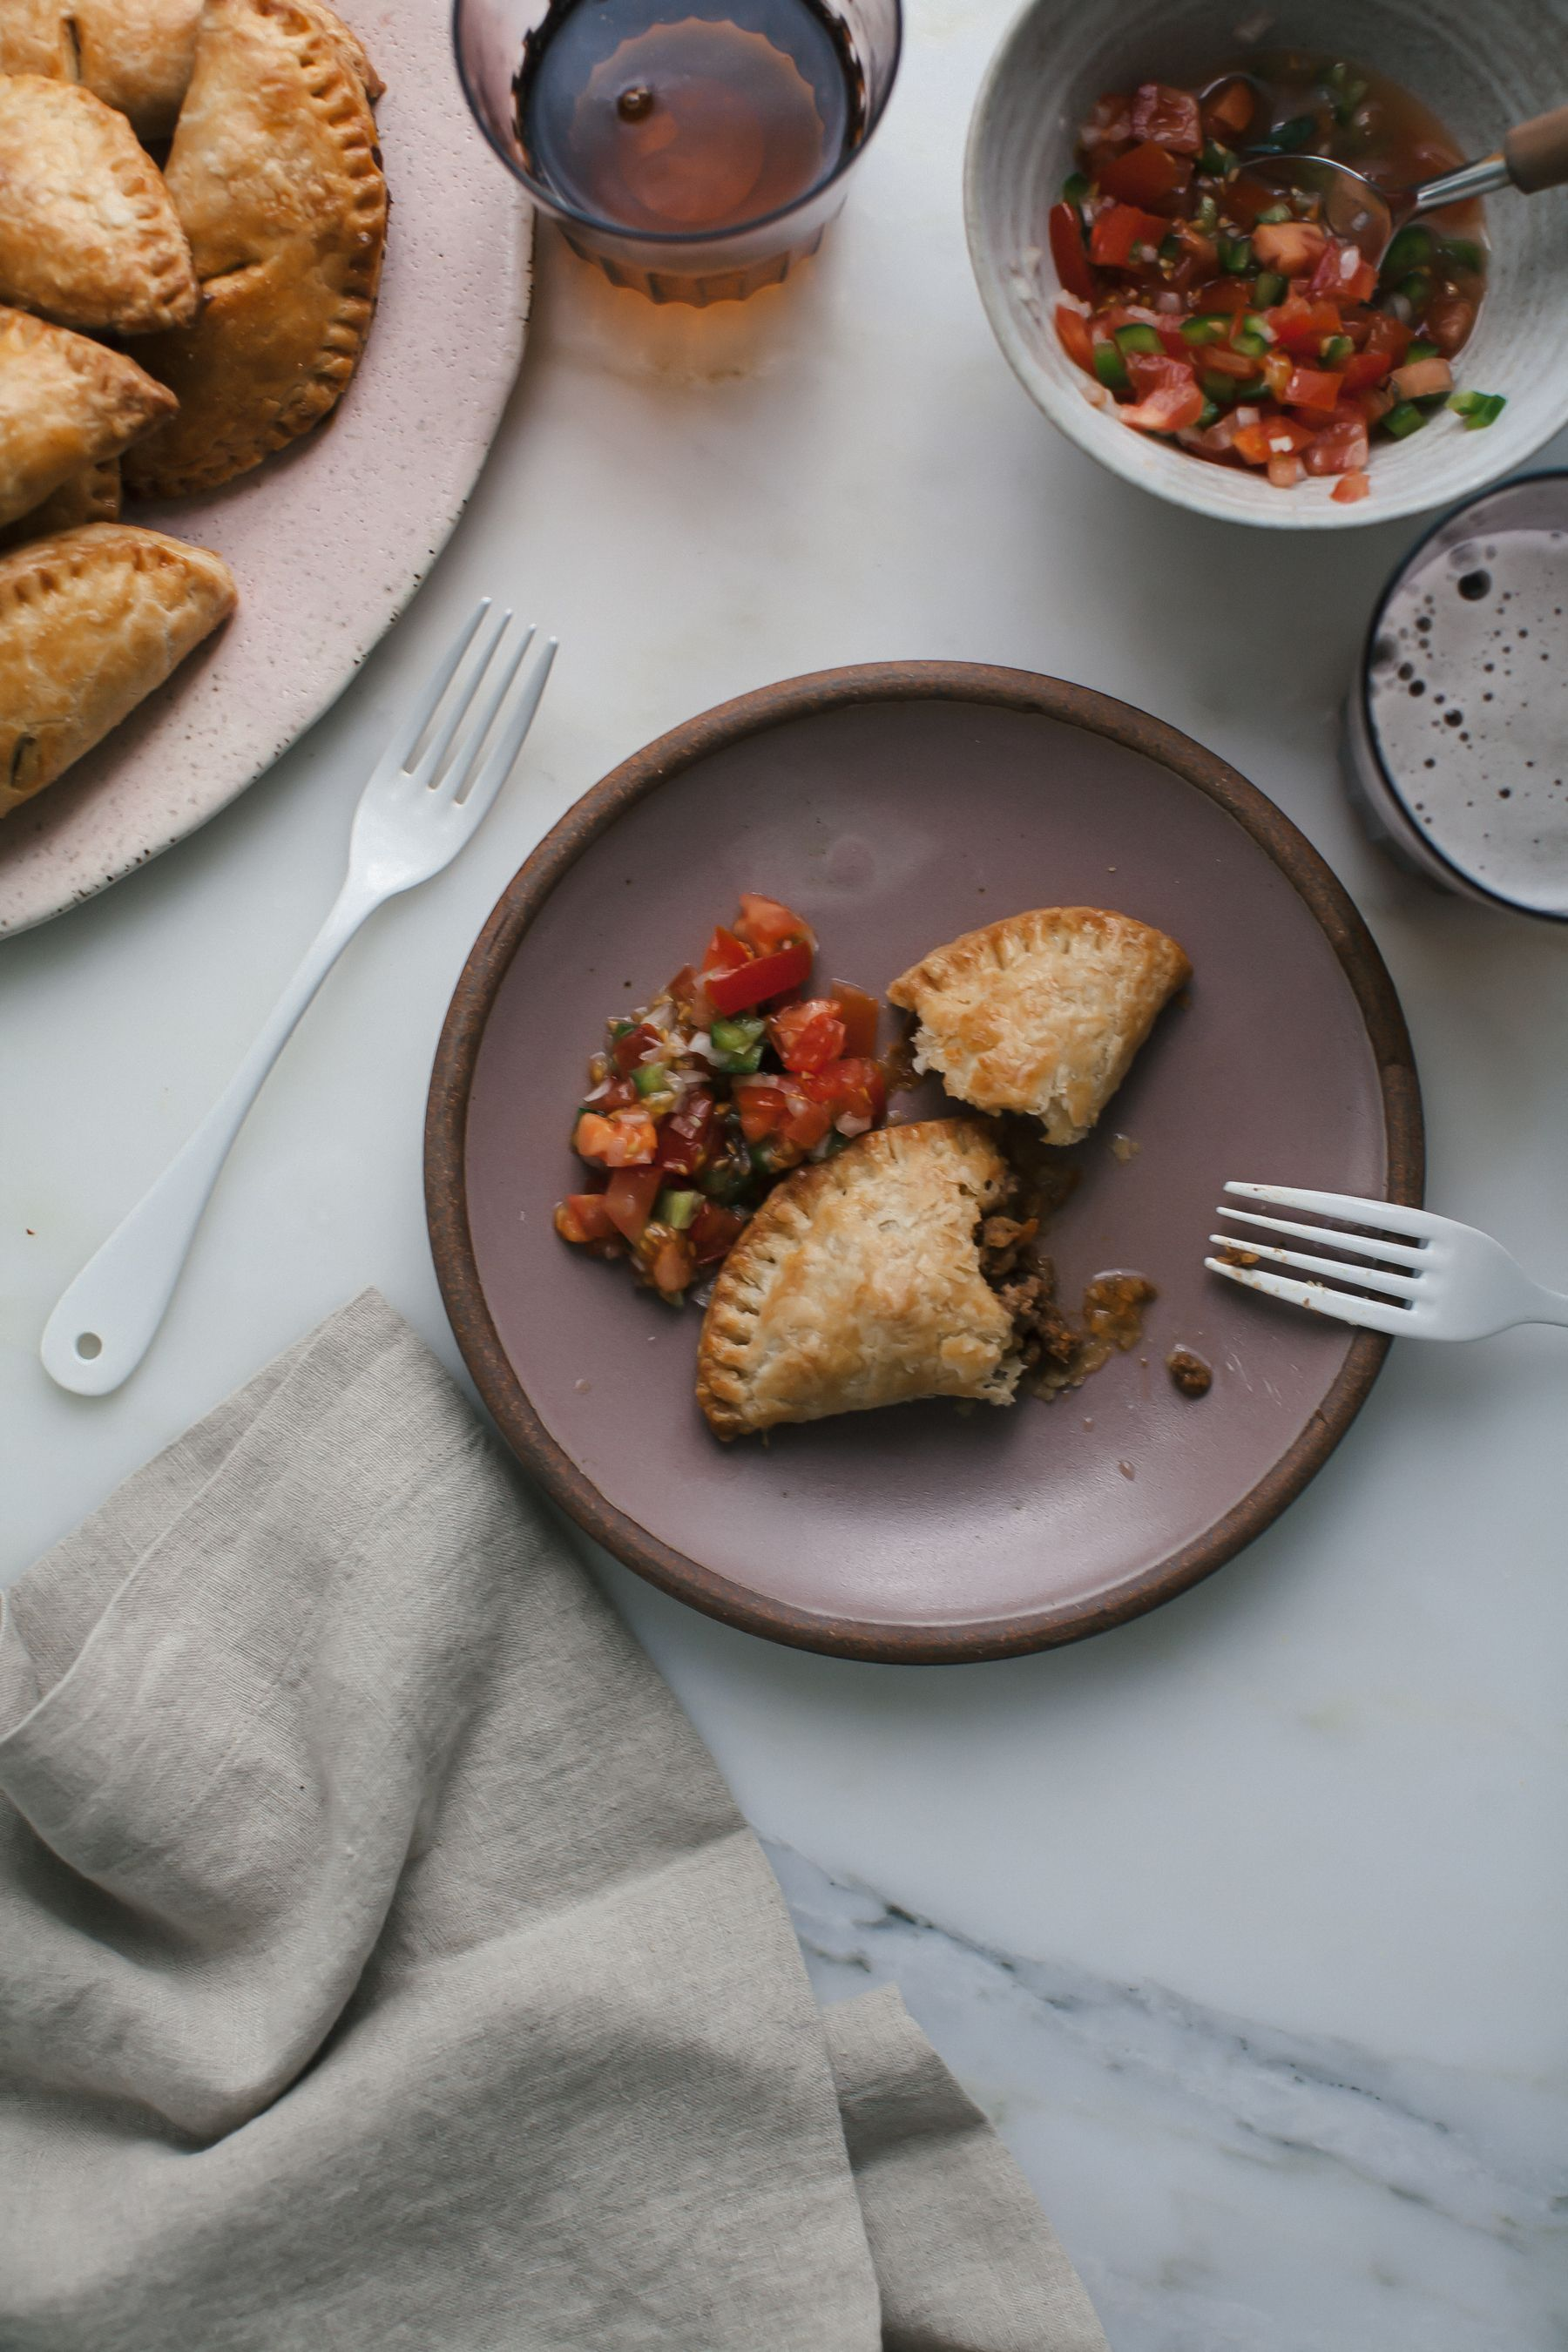 Pin by recipes on recipes pinterest baked empanadas empanadas mexican spanish baked empanadasminimalist bakersunday dinnersparty appetizerscomfort foodsinternational foodcozy kitchenrecipe ideasmexican recipes forumfinder Image collections